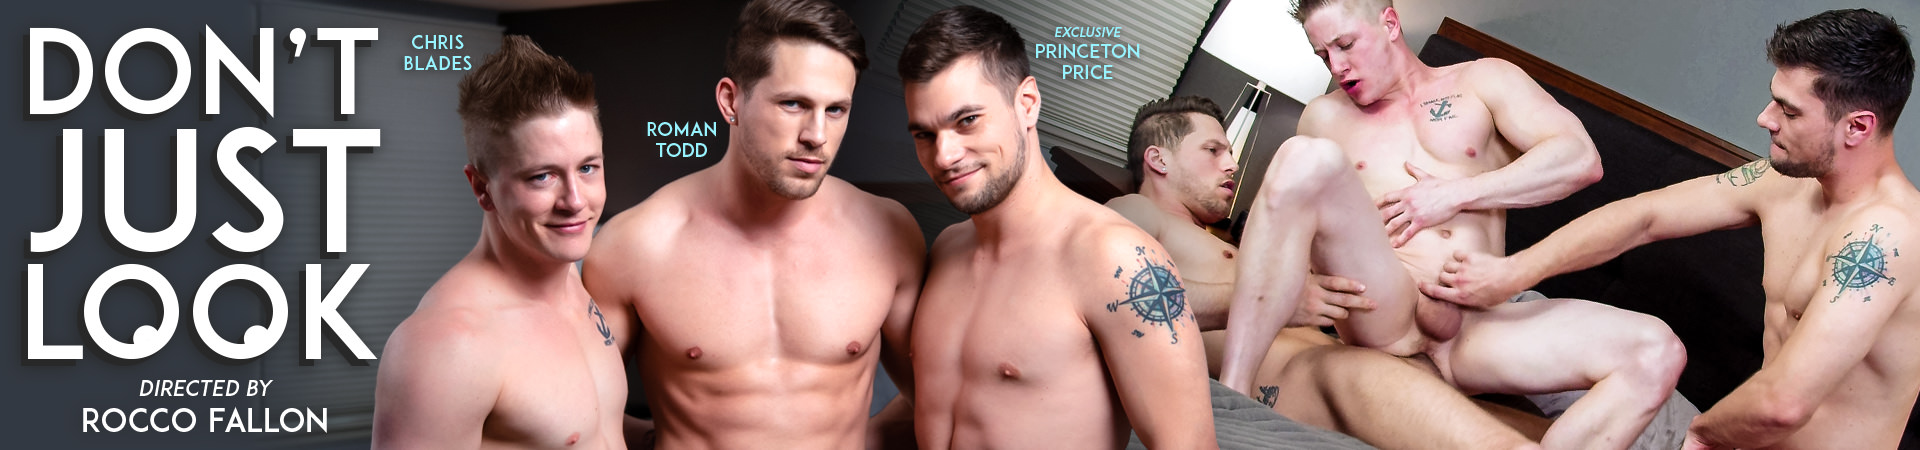 Don't Just Look Featuring Chris Blades, Princeton Price, and Roman Todd